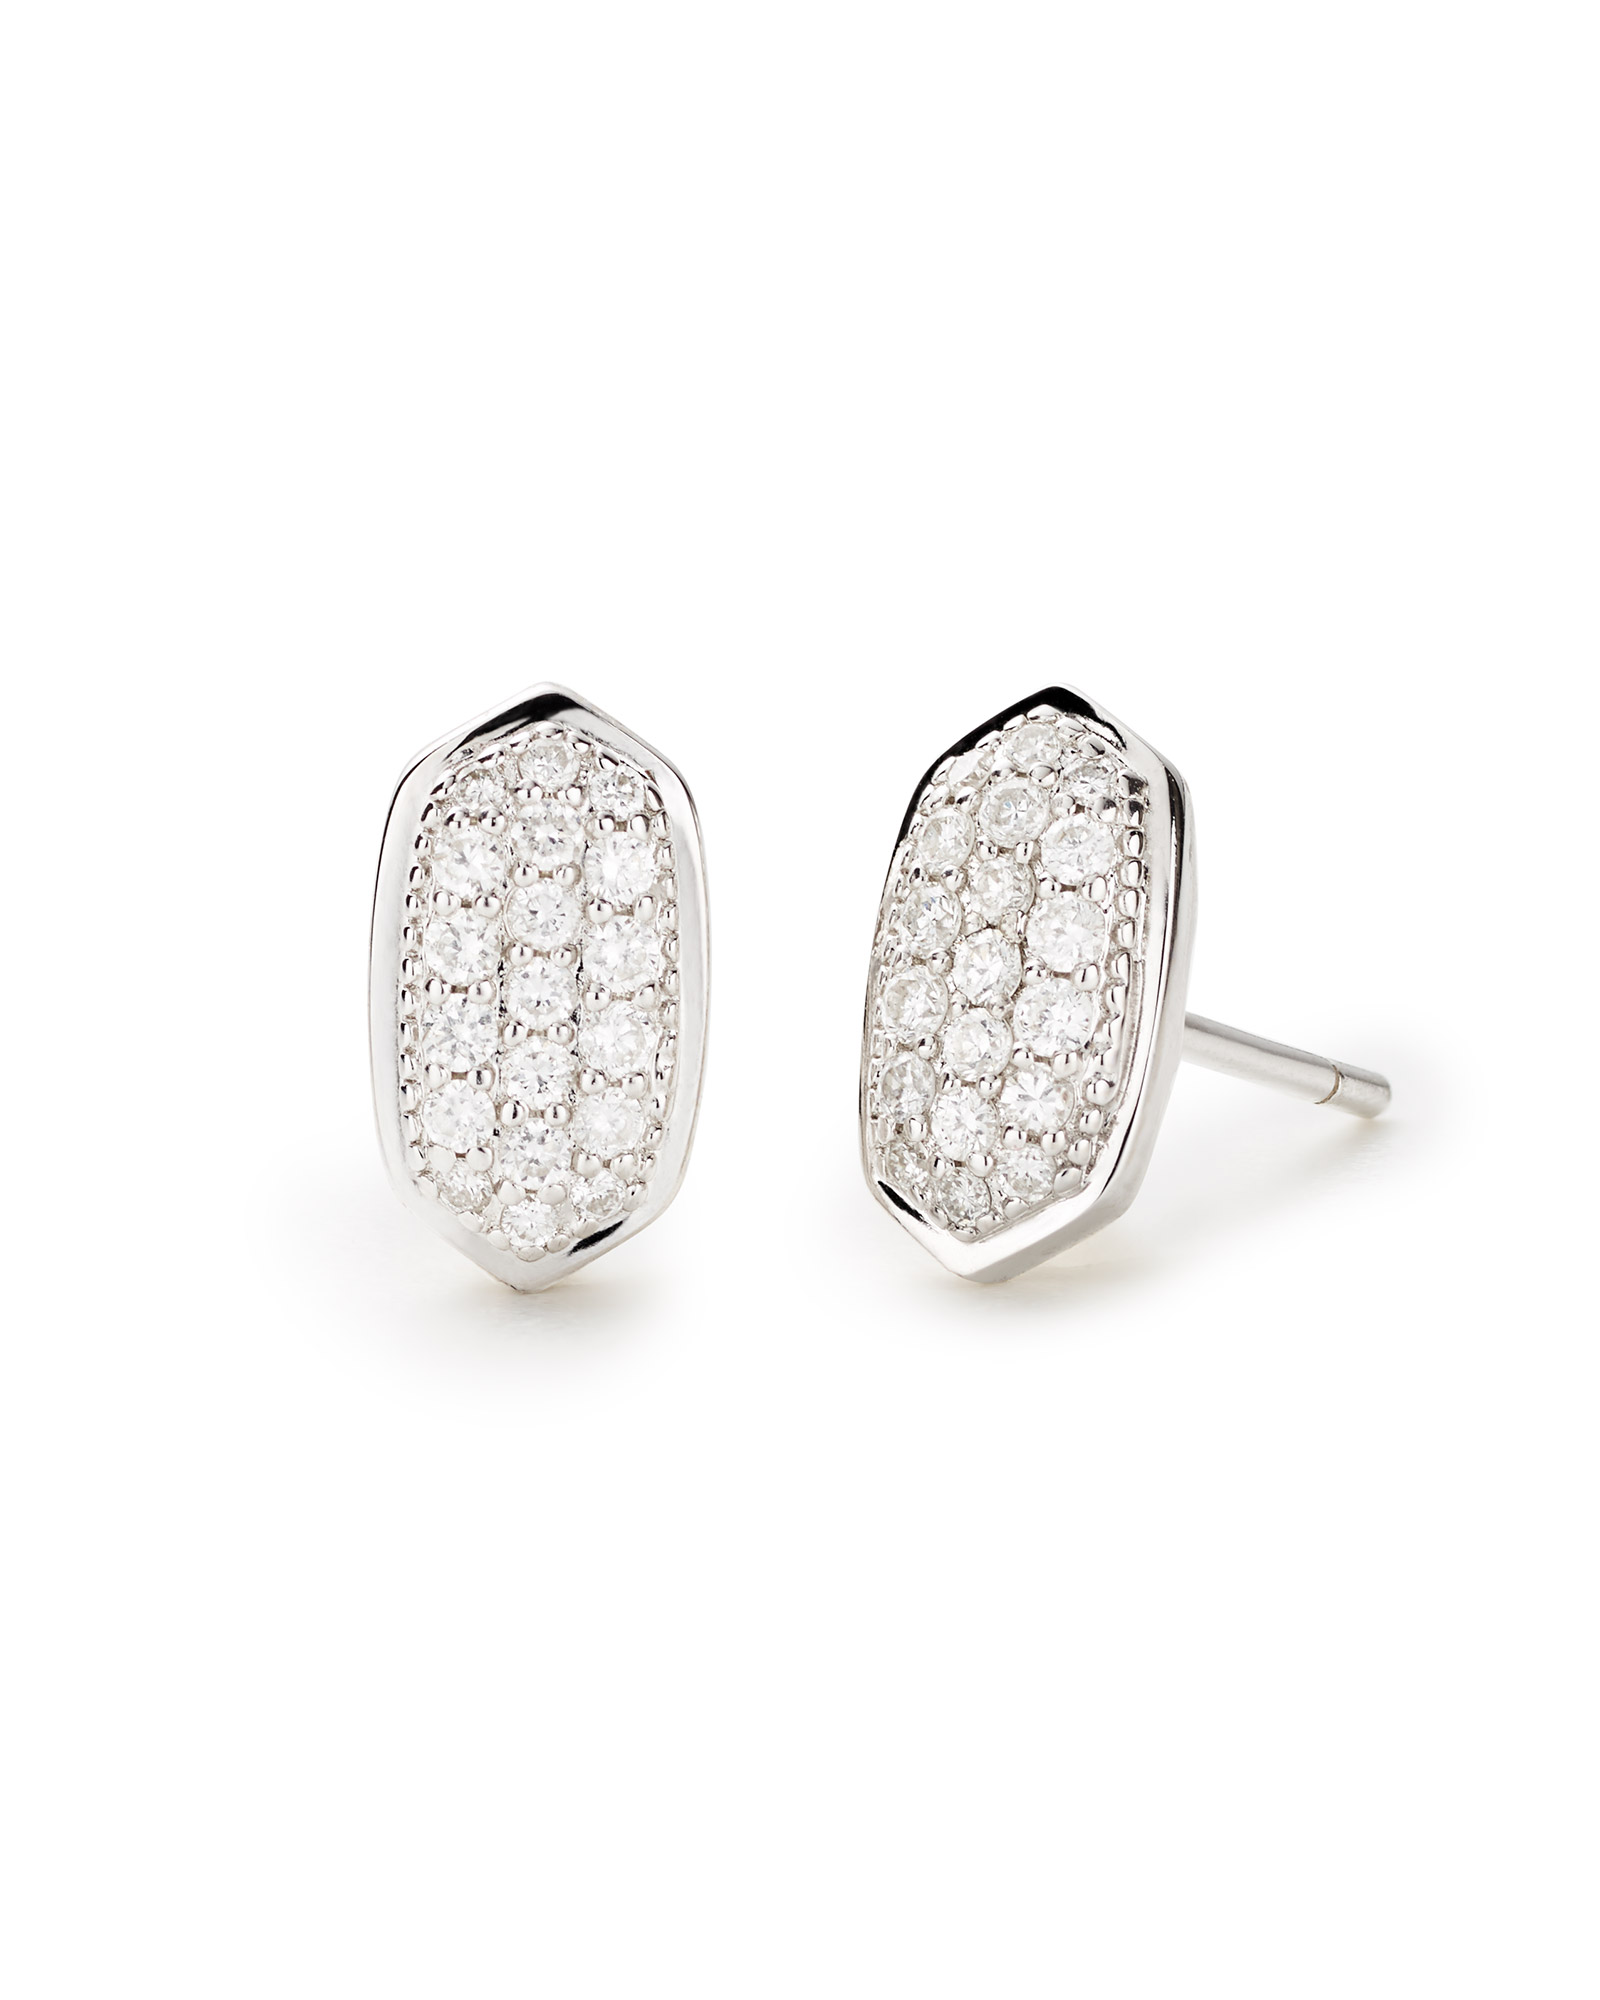 Amelee Earrings in Pave Diamond and 14k White Gold